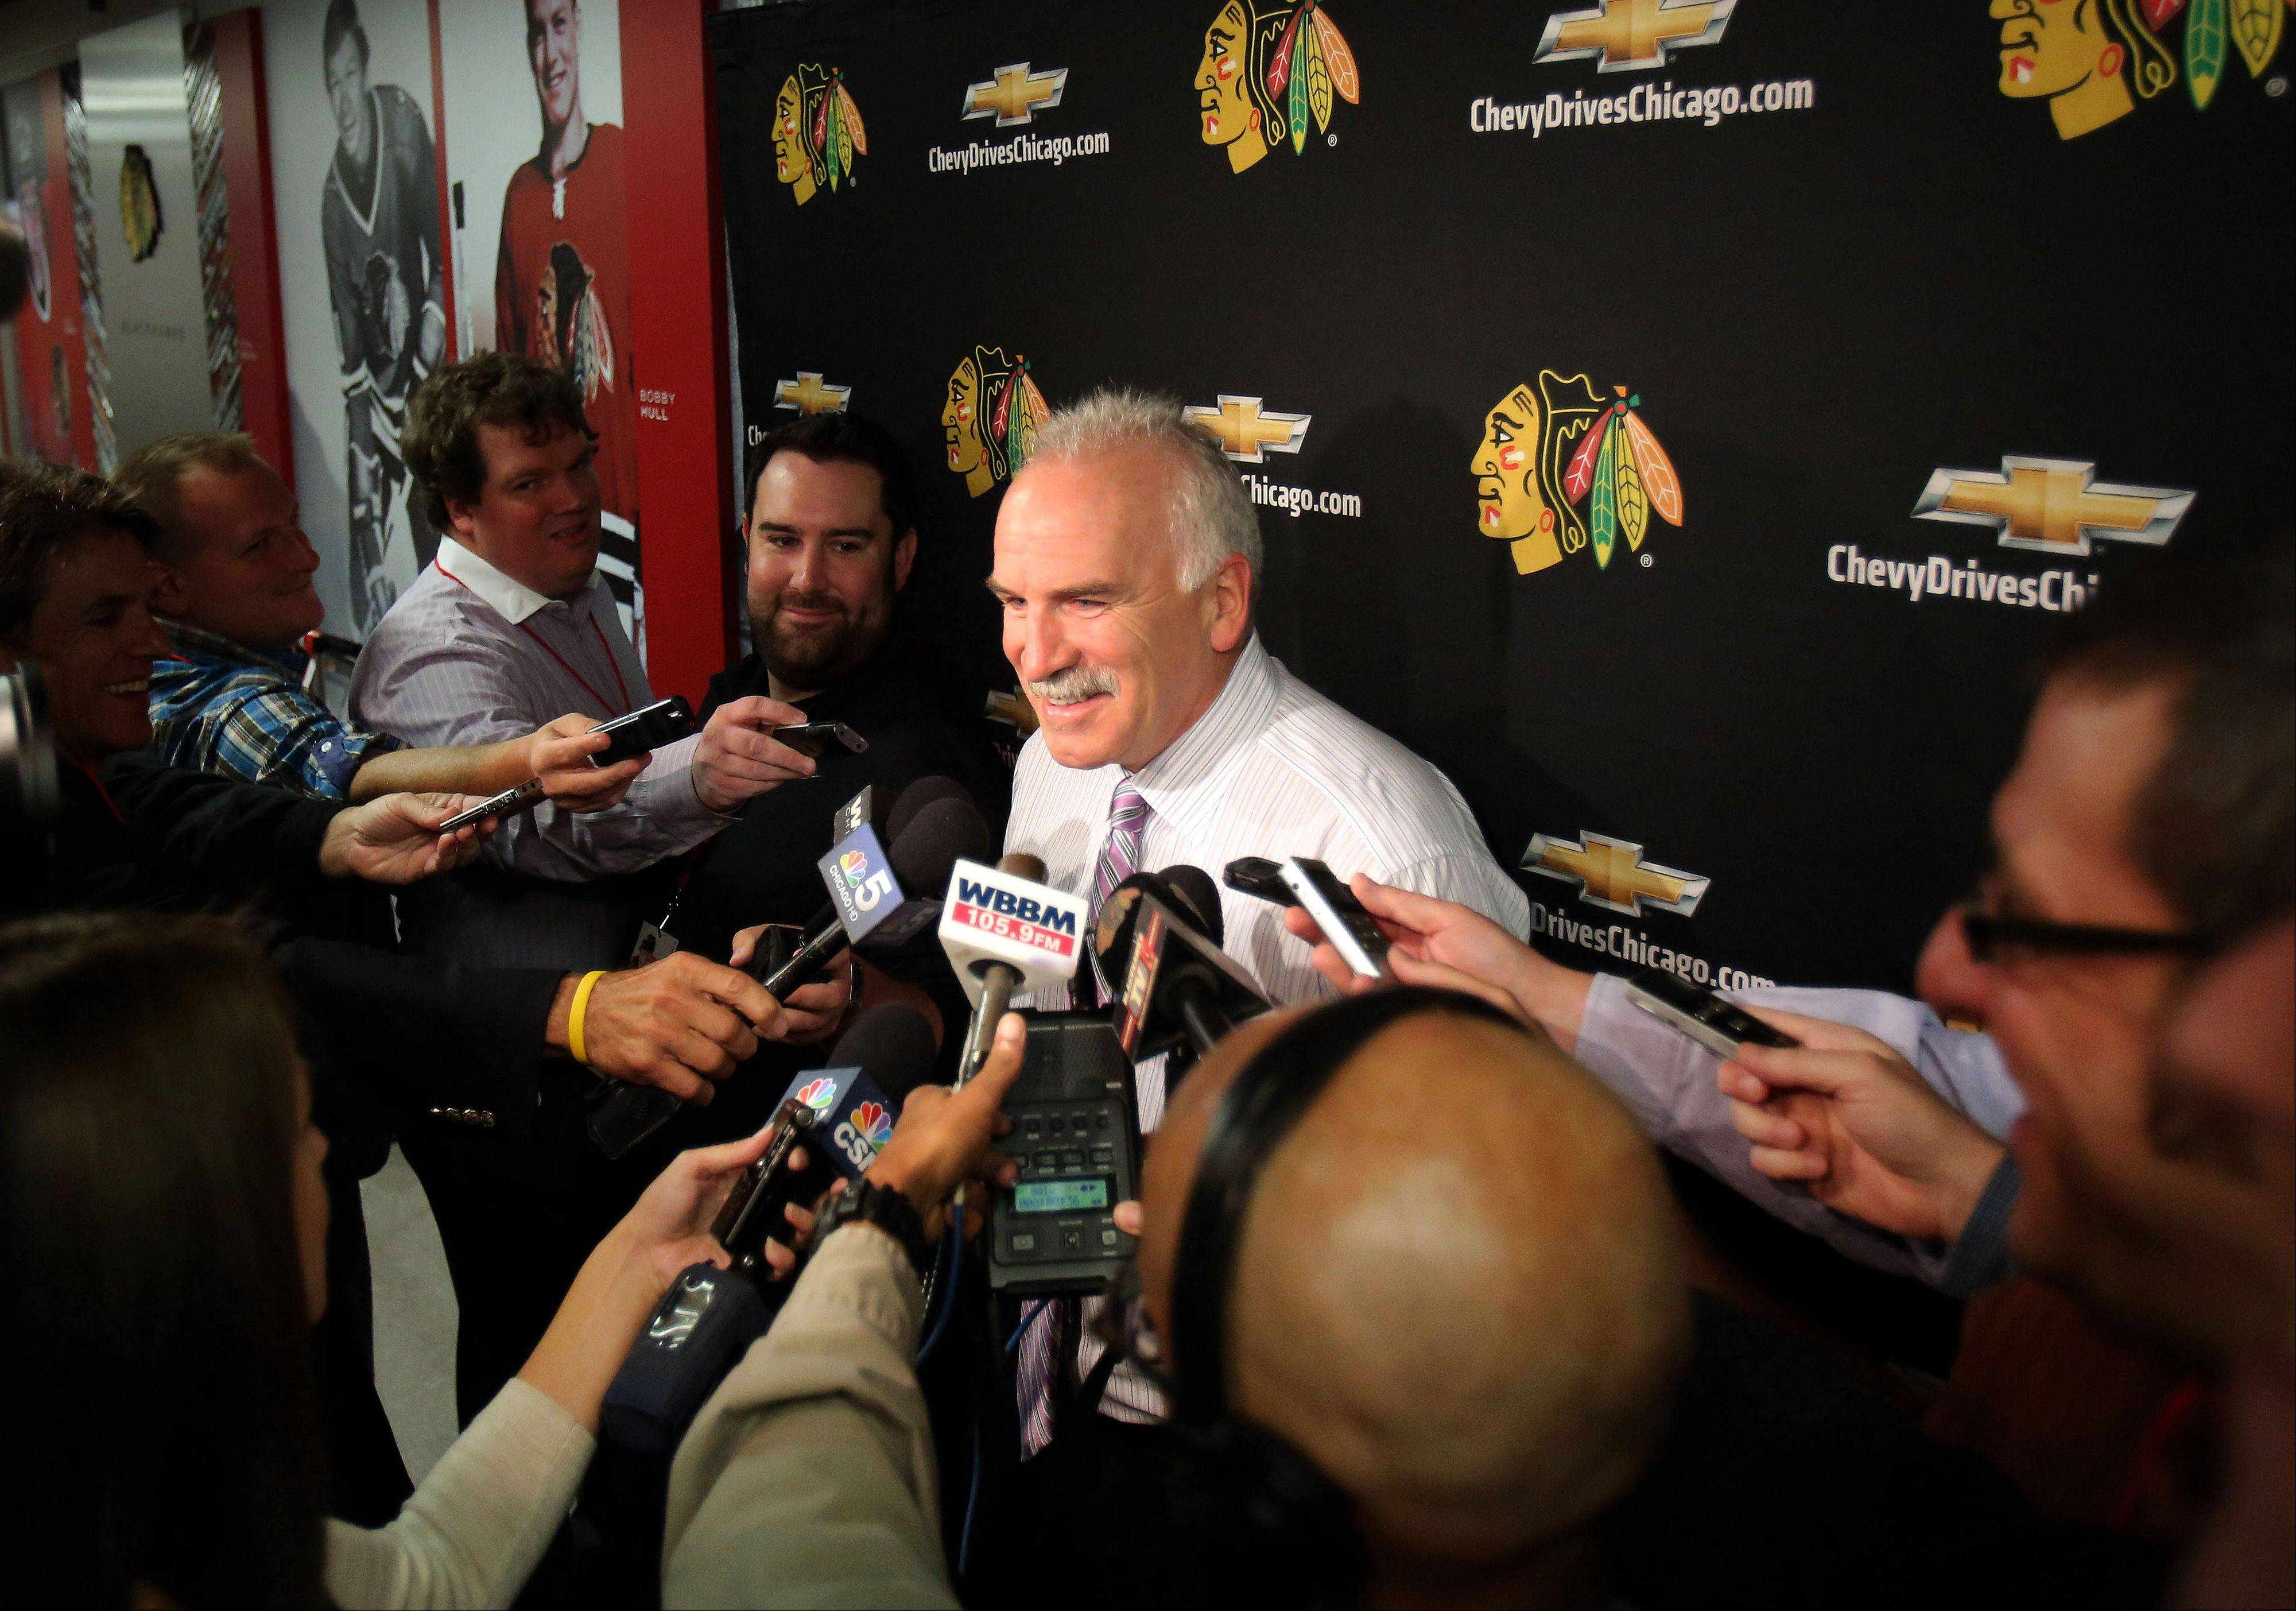 Blackhawks head coach Joel Quenneville is now third on the all-time list for NHL coaching wins.